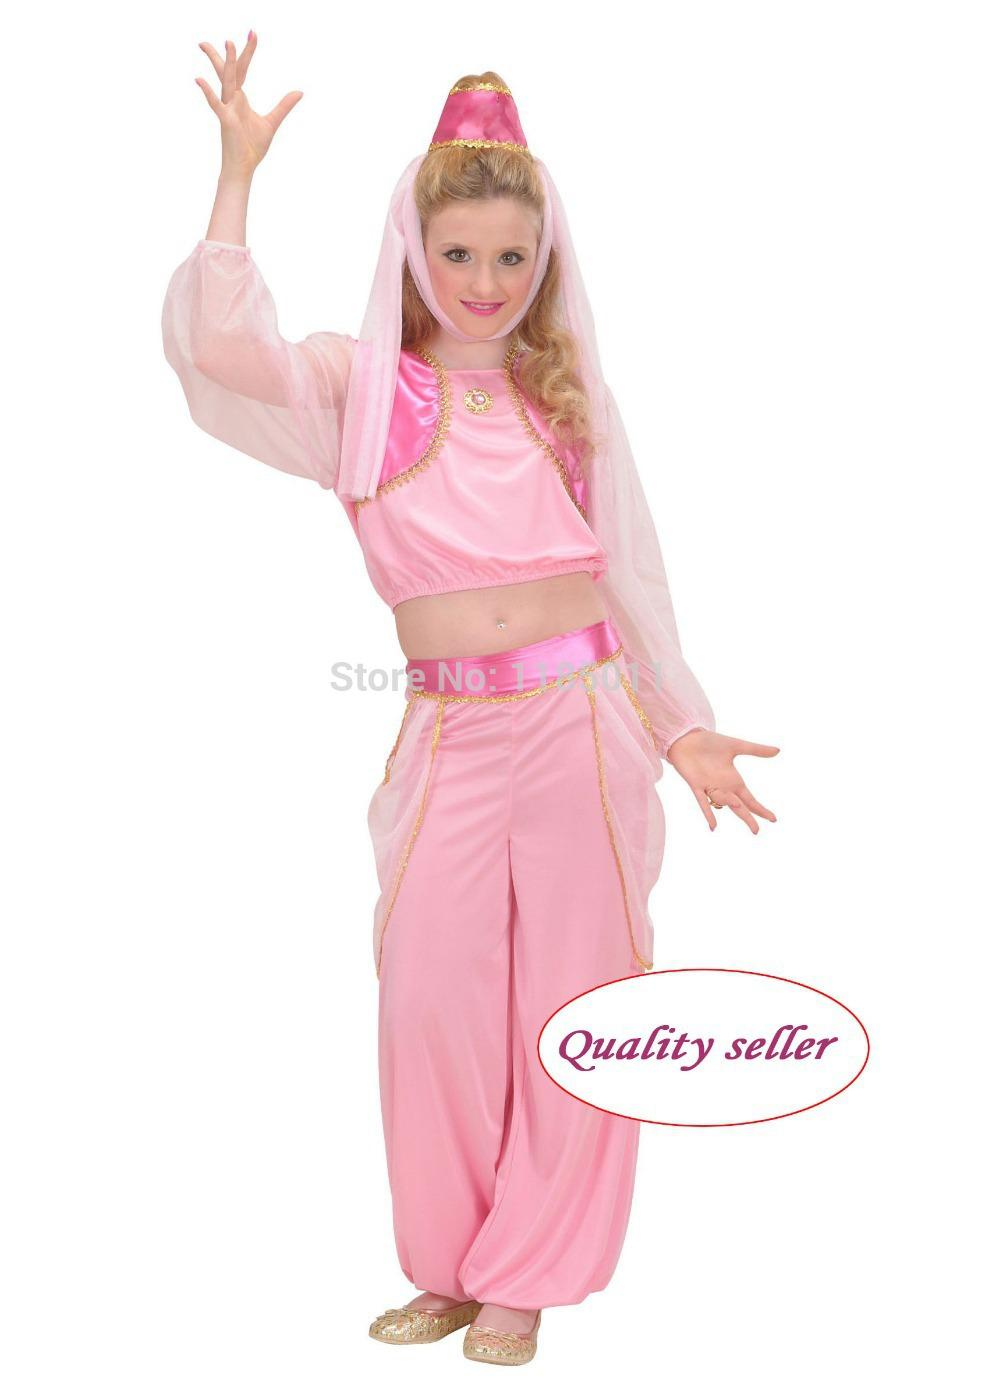 Mascot Genie From The L& Costume Satin Dress Pretty Fantasia Girl Carnival Halloween Costume For Kids Children Cosplay Costumes Funny Halloween Costumes ...  sc 1 st  DHgate.com & Mascot Genie From The Lamp Costume Satin Dress Pretty Fantasia Girl ...